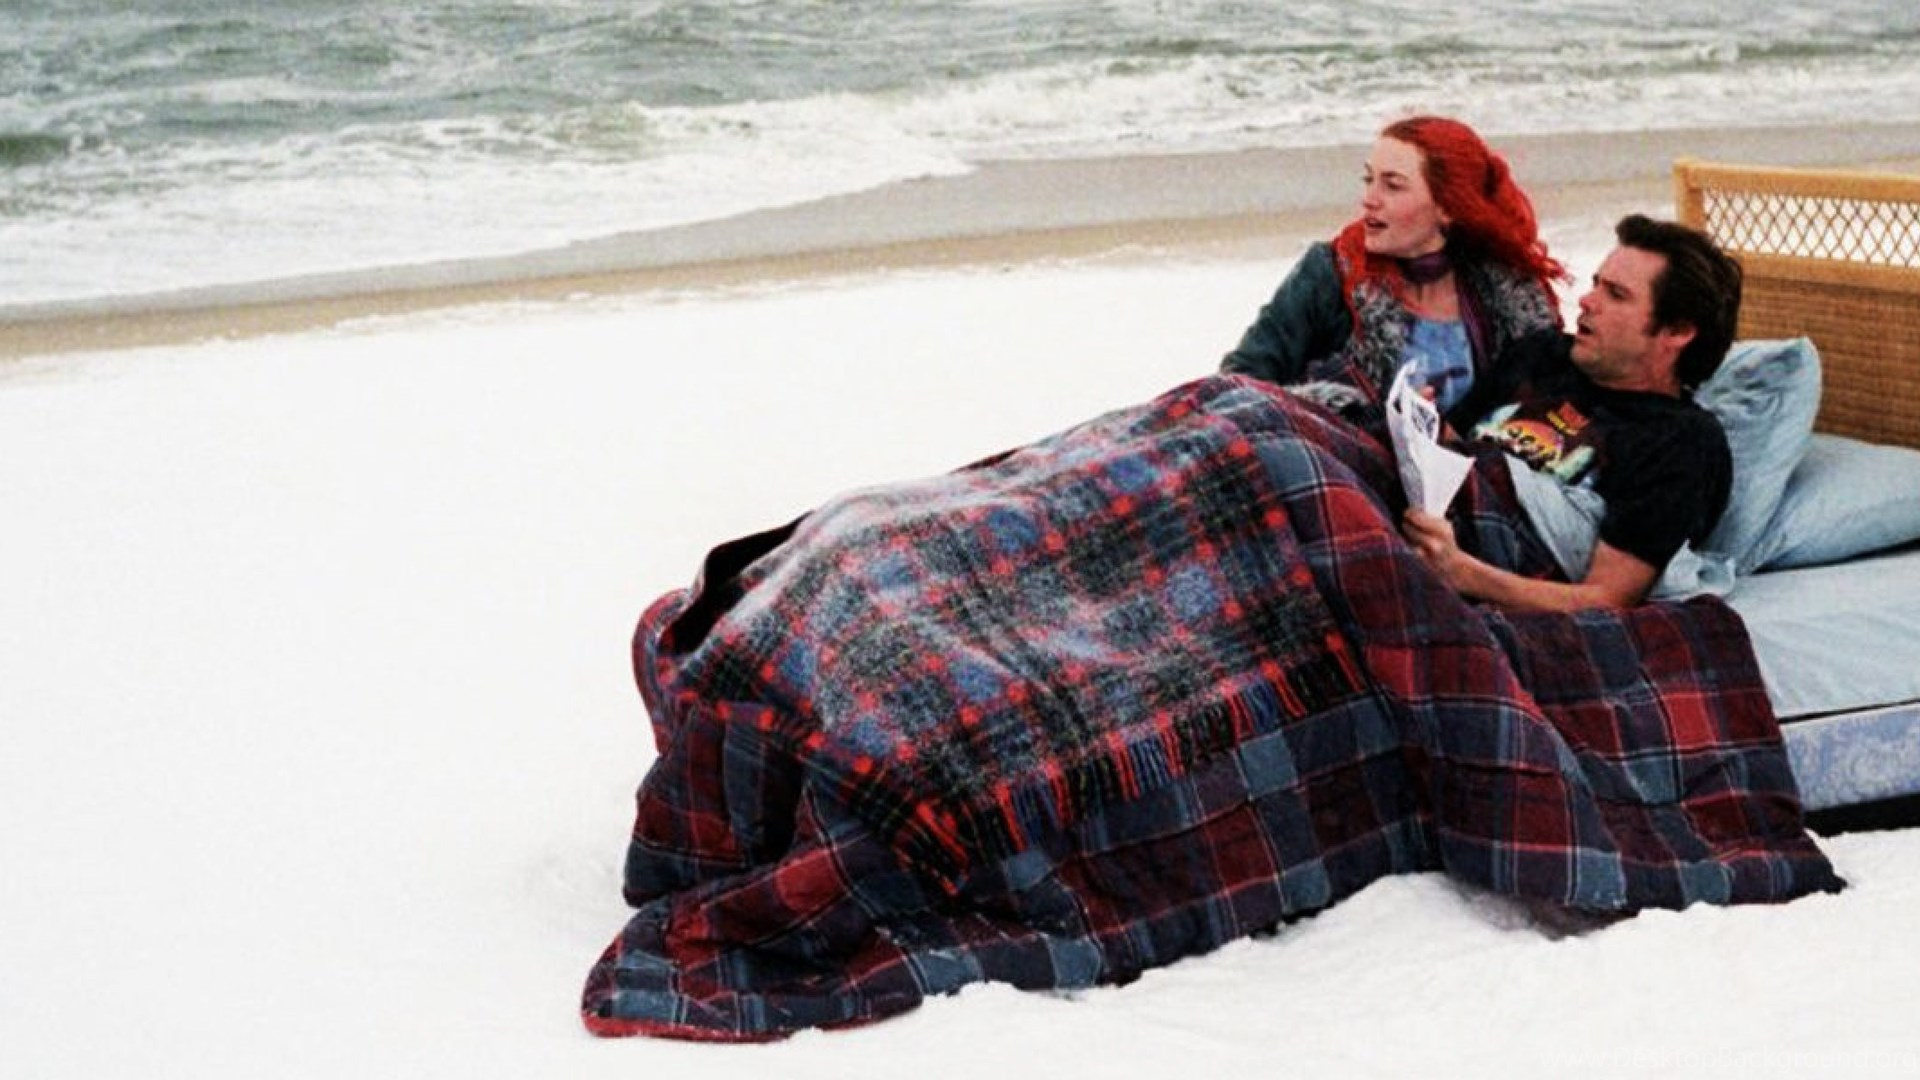 Download Wallpapers 3840x1200 Eternal Sunshine Of The Spotless